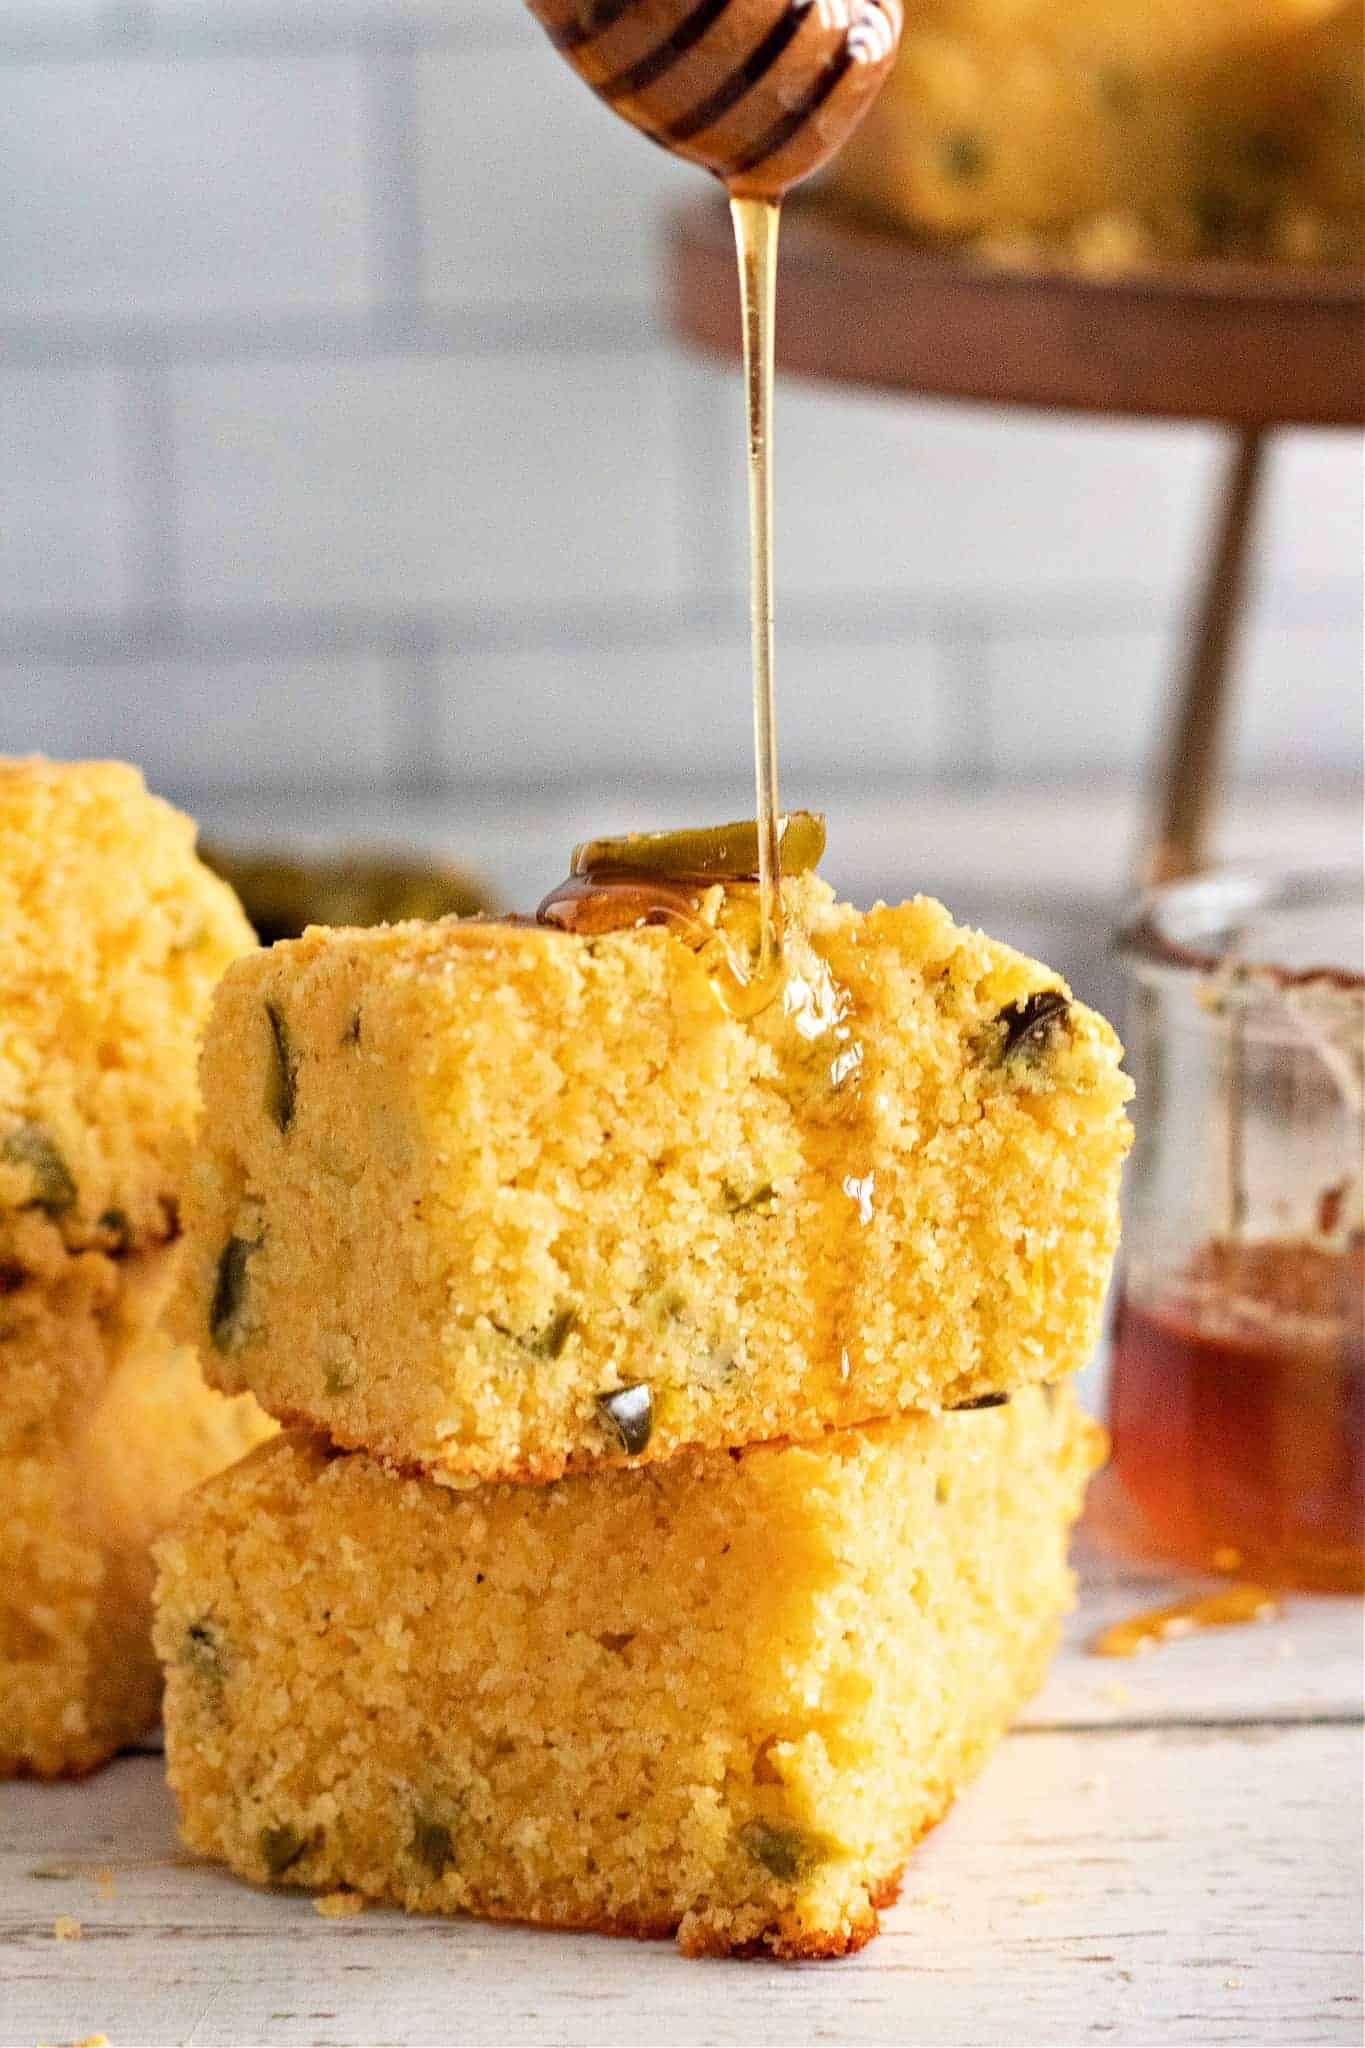 Jalapeño Cornbread with honey being drizzled on top